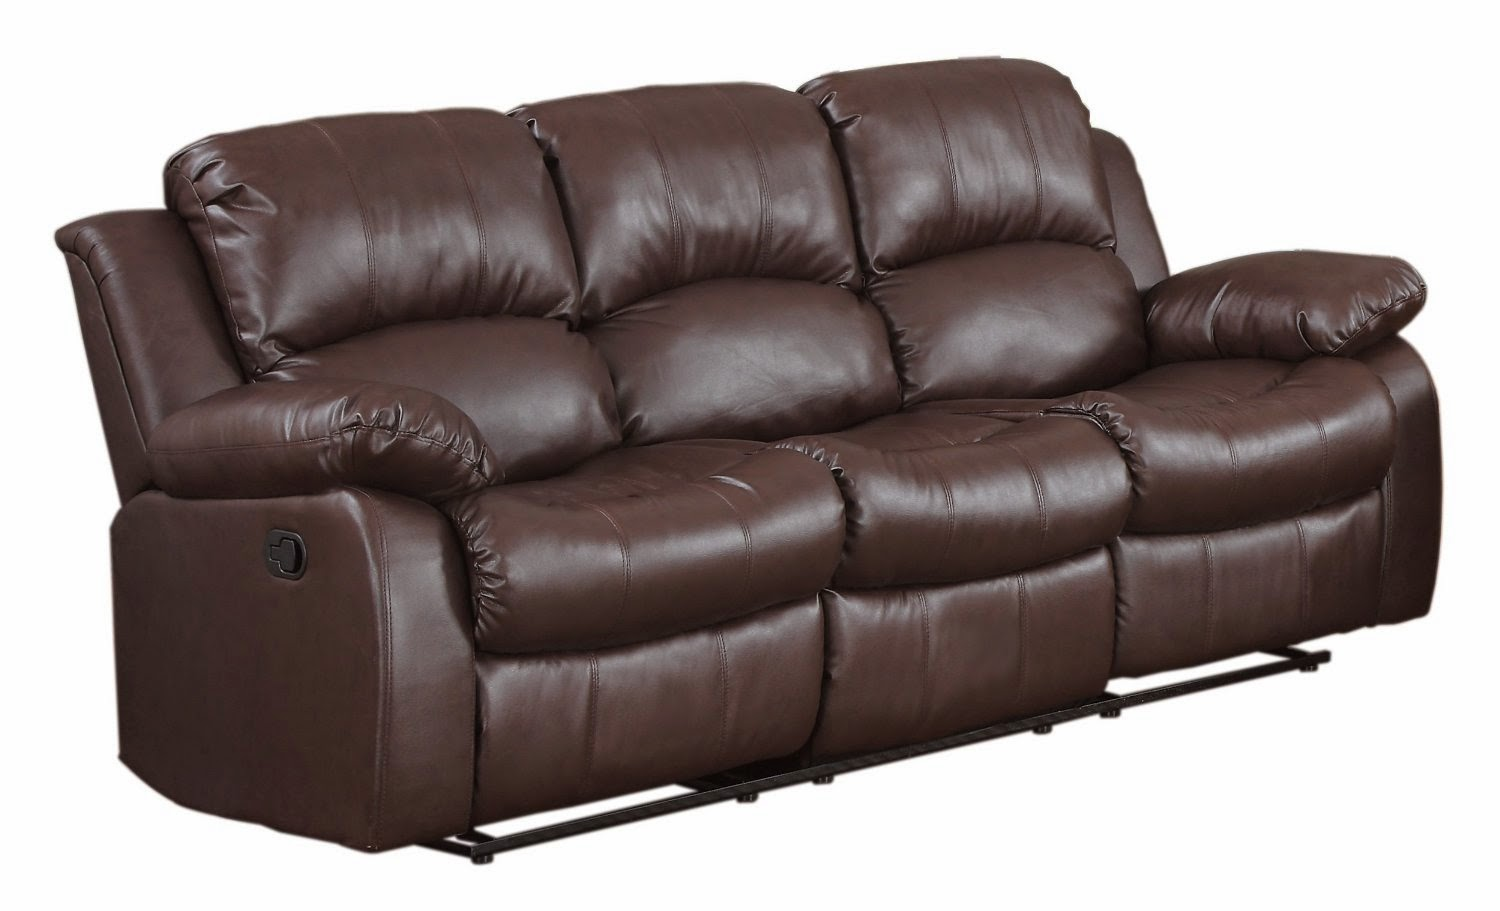 chaise recliner sofa wilson next the best reclining leather reviews loukas